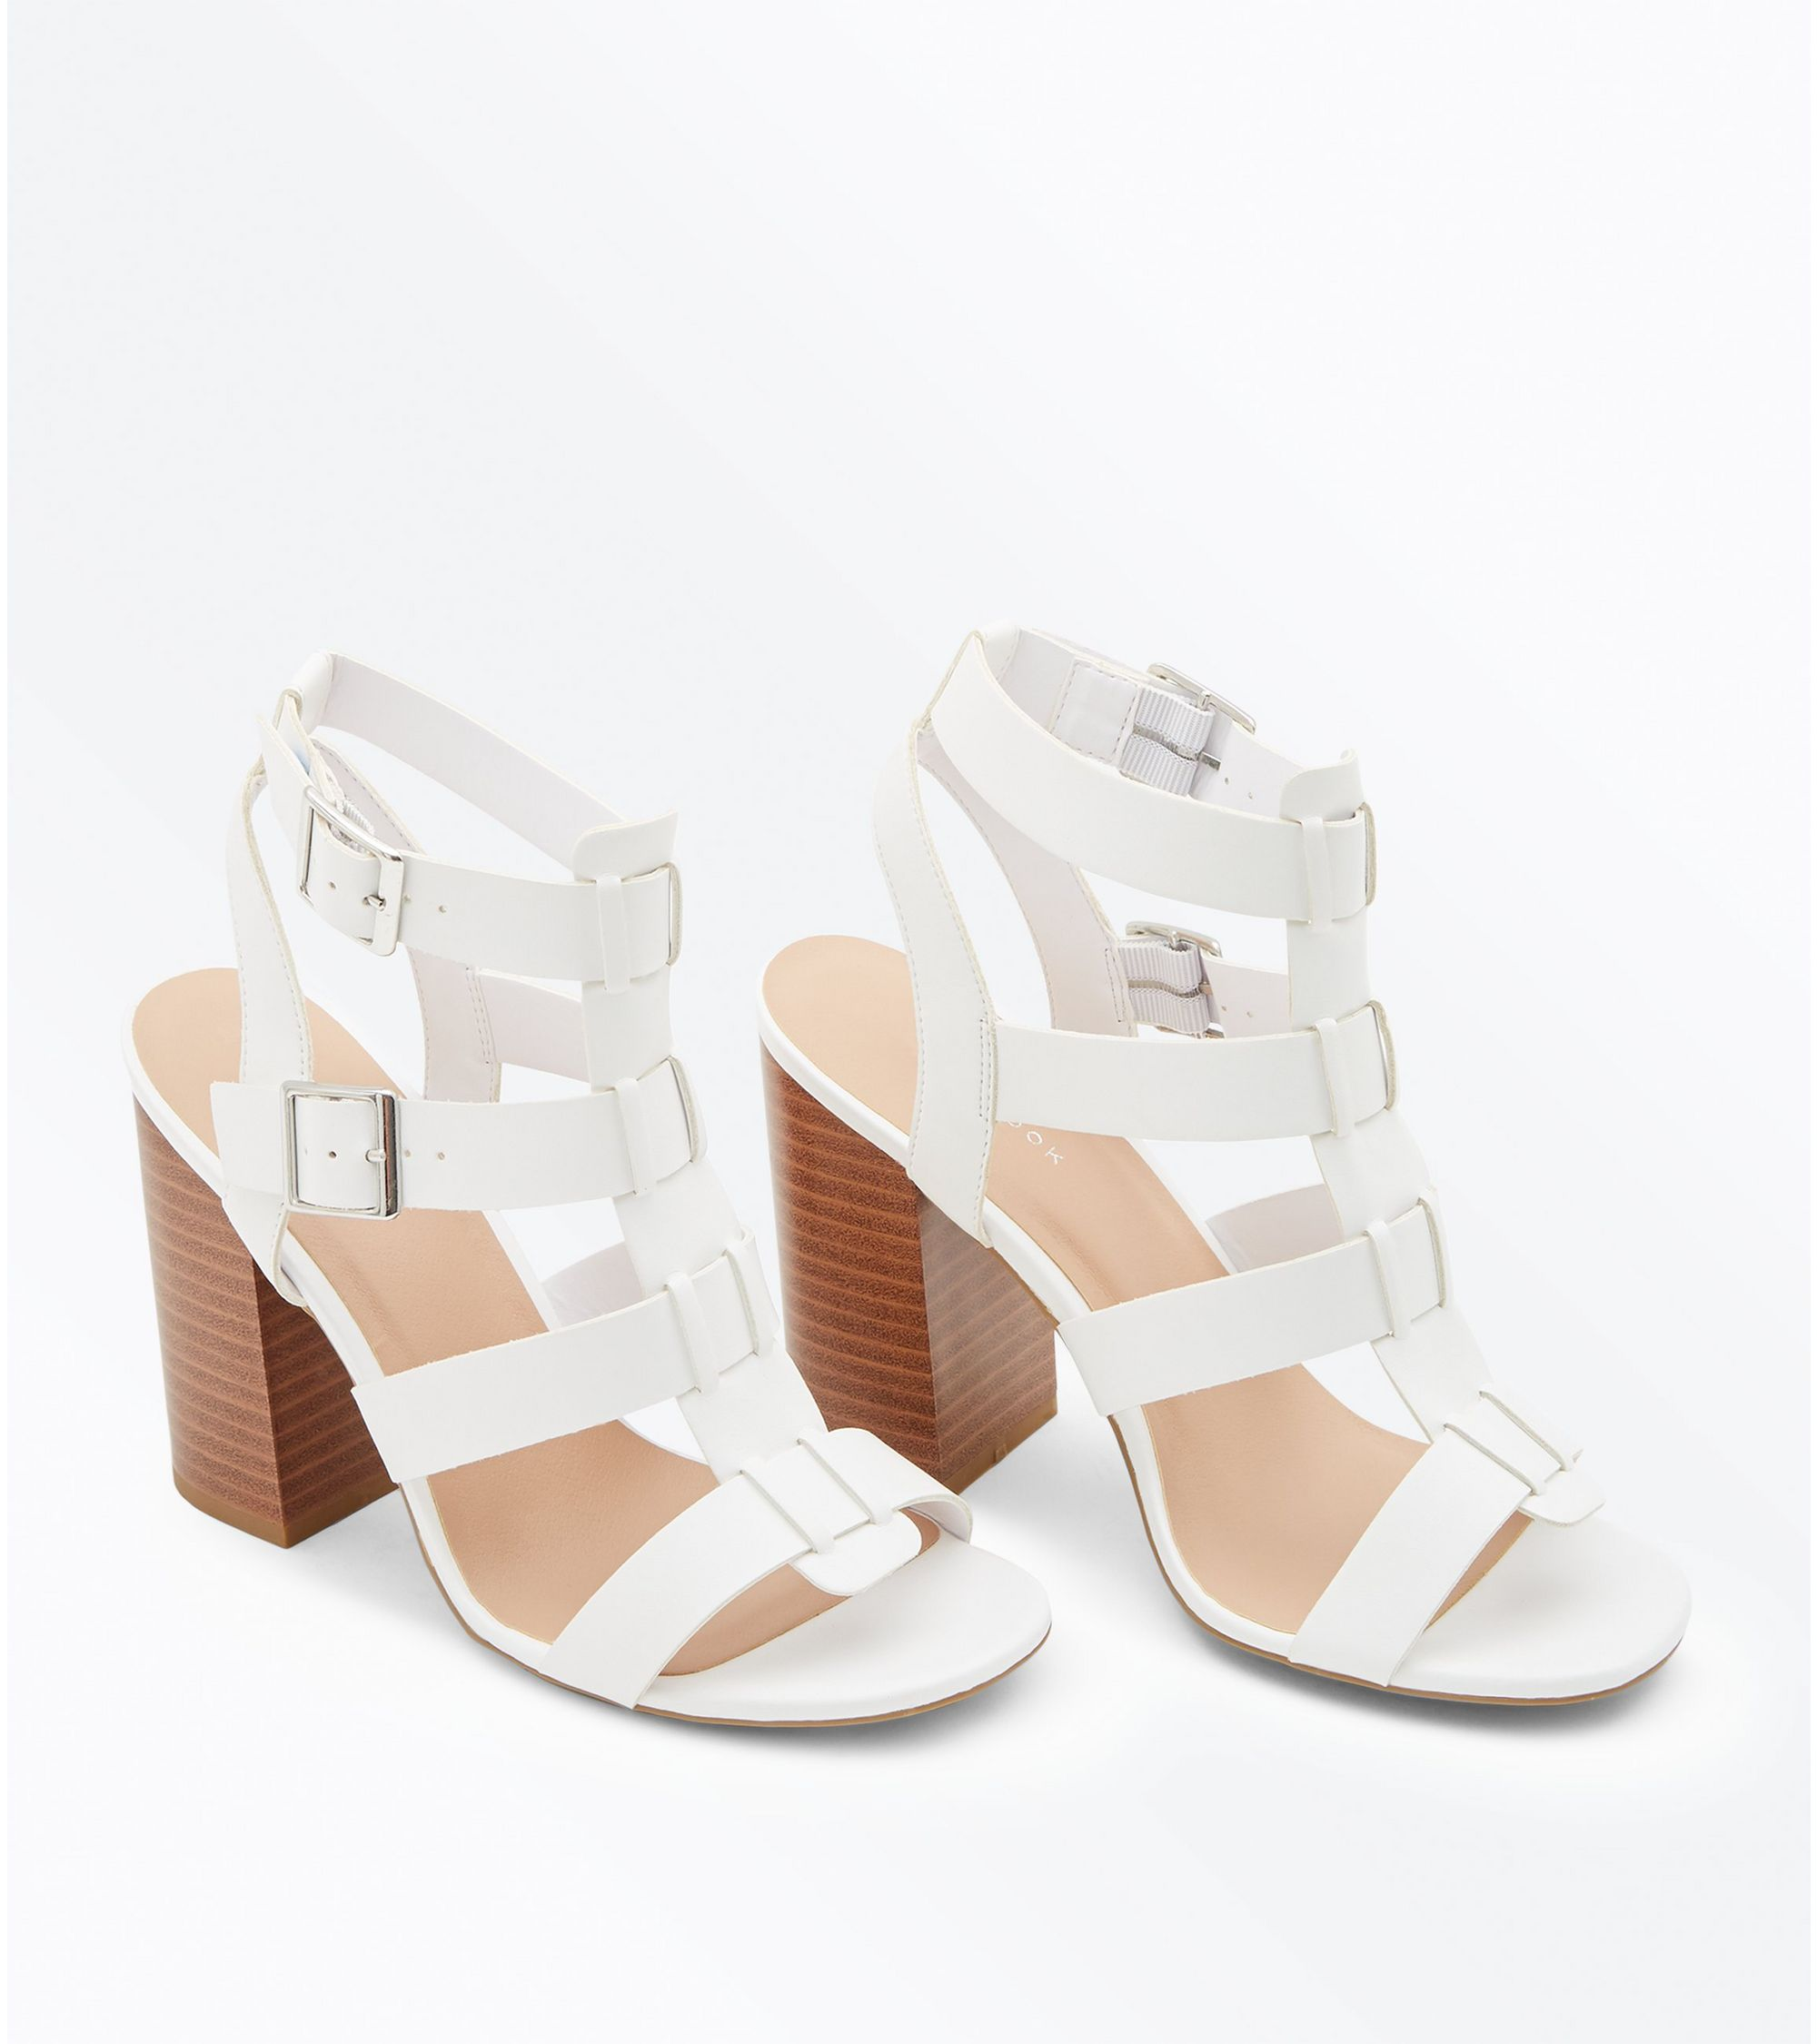 e574155fedc New Look White Wooden Block Heel Gladiator Sandals at £12